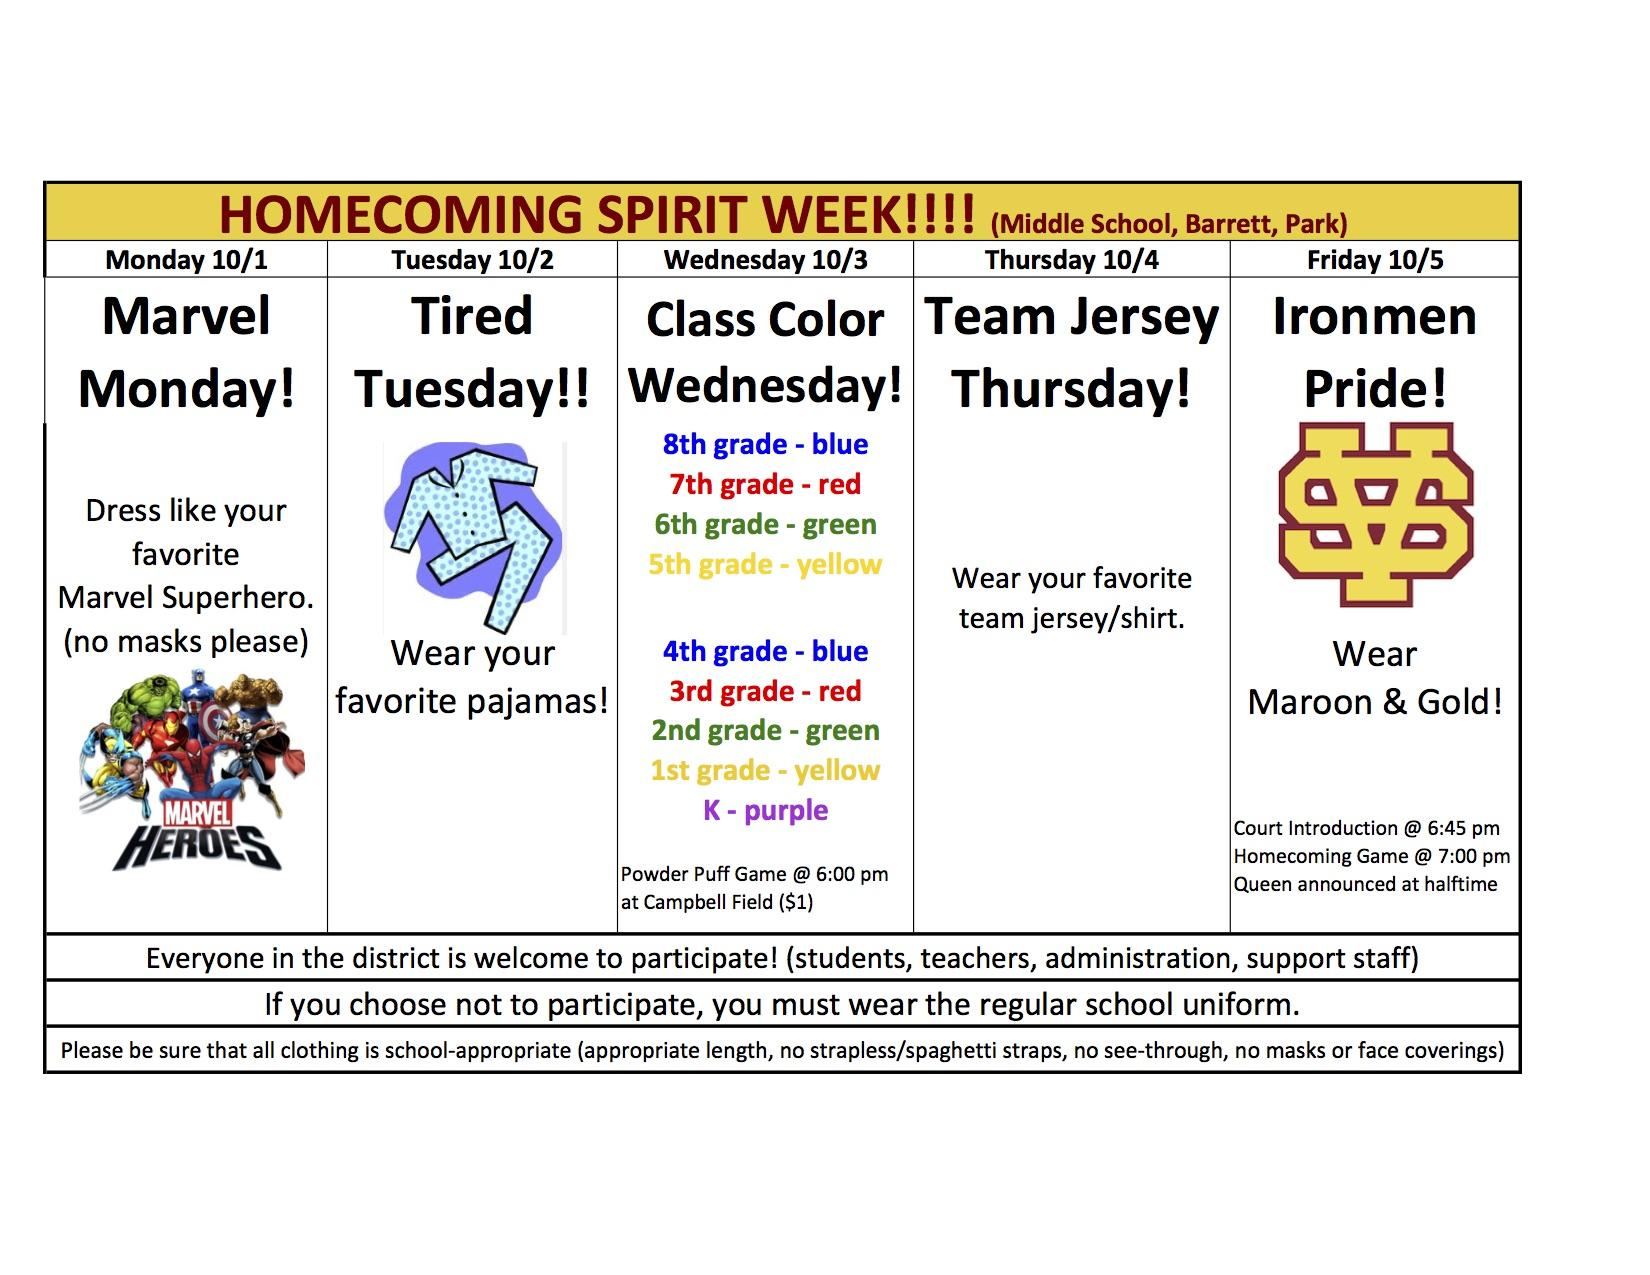 Homecoming Spirit Week schedule